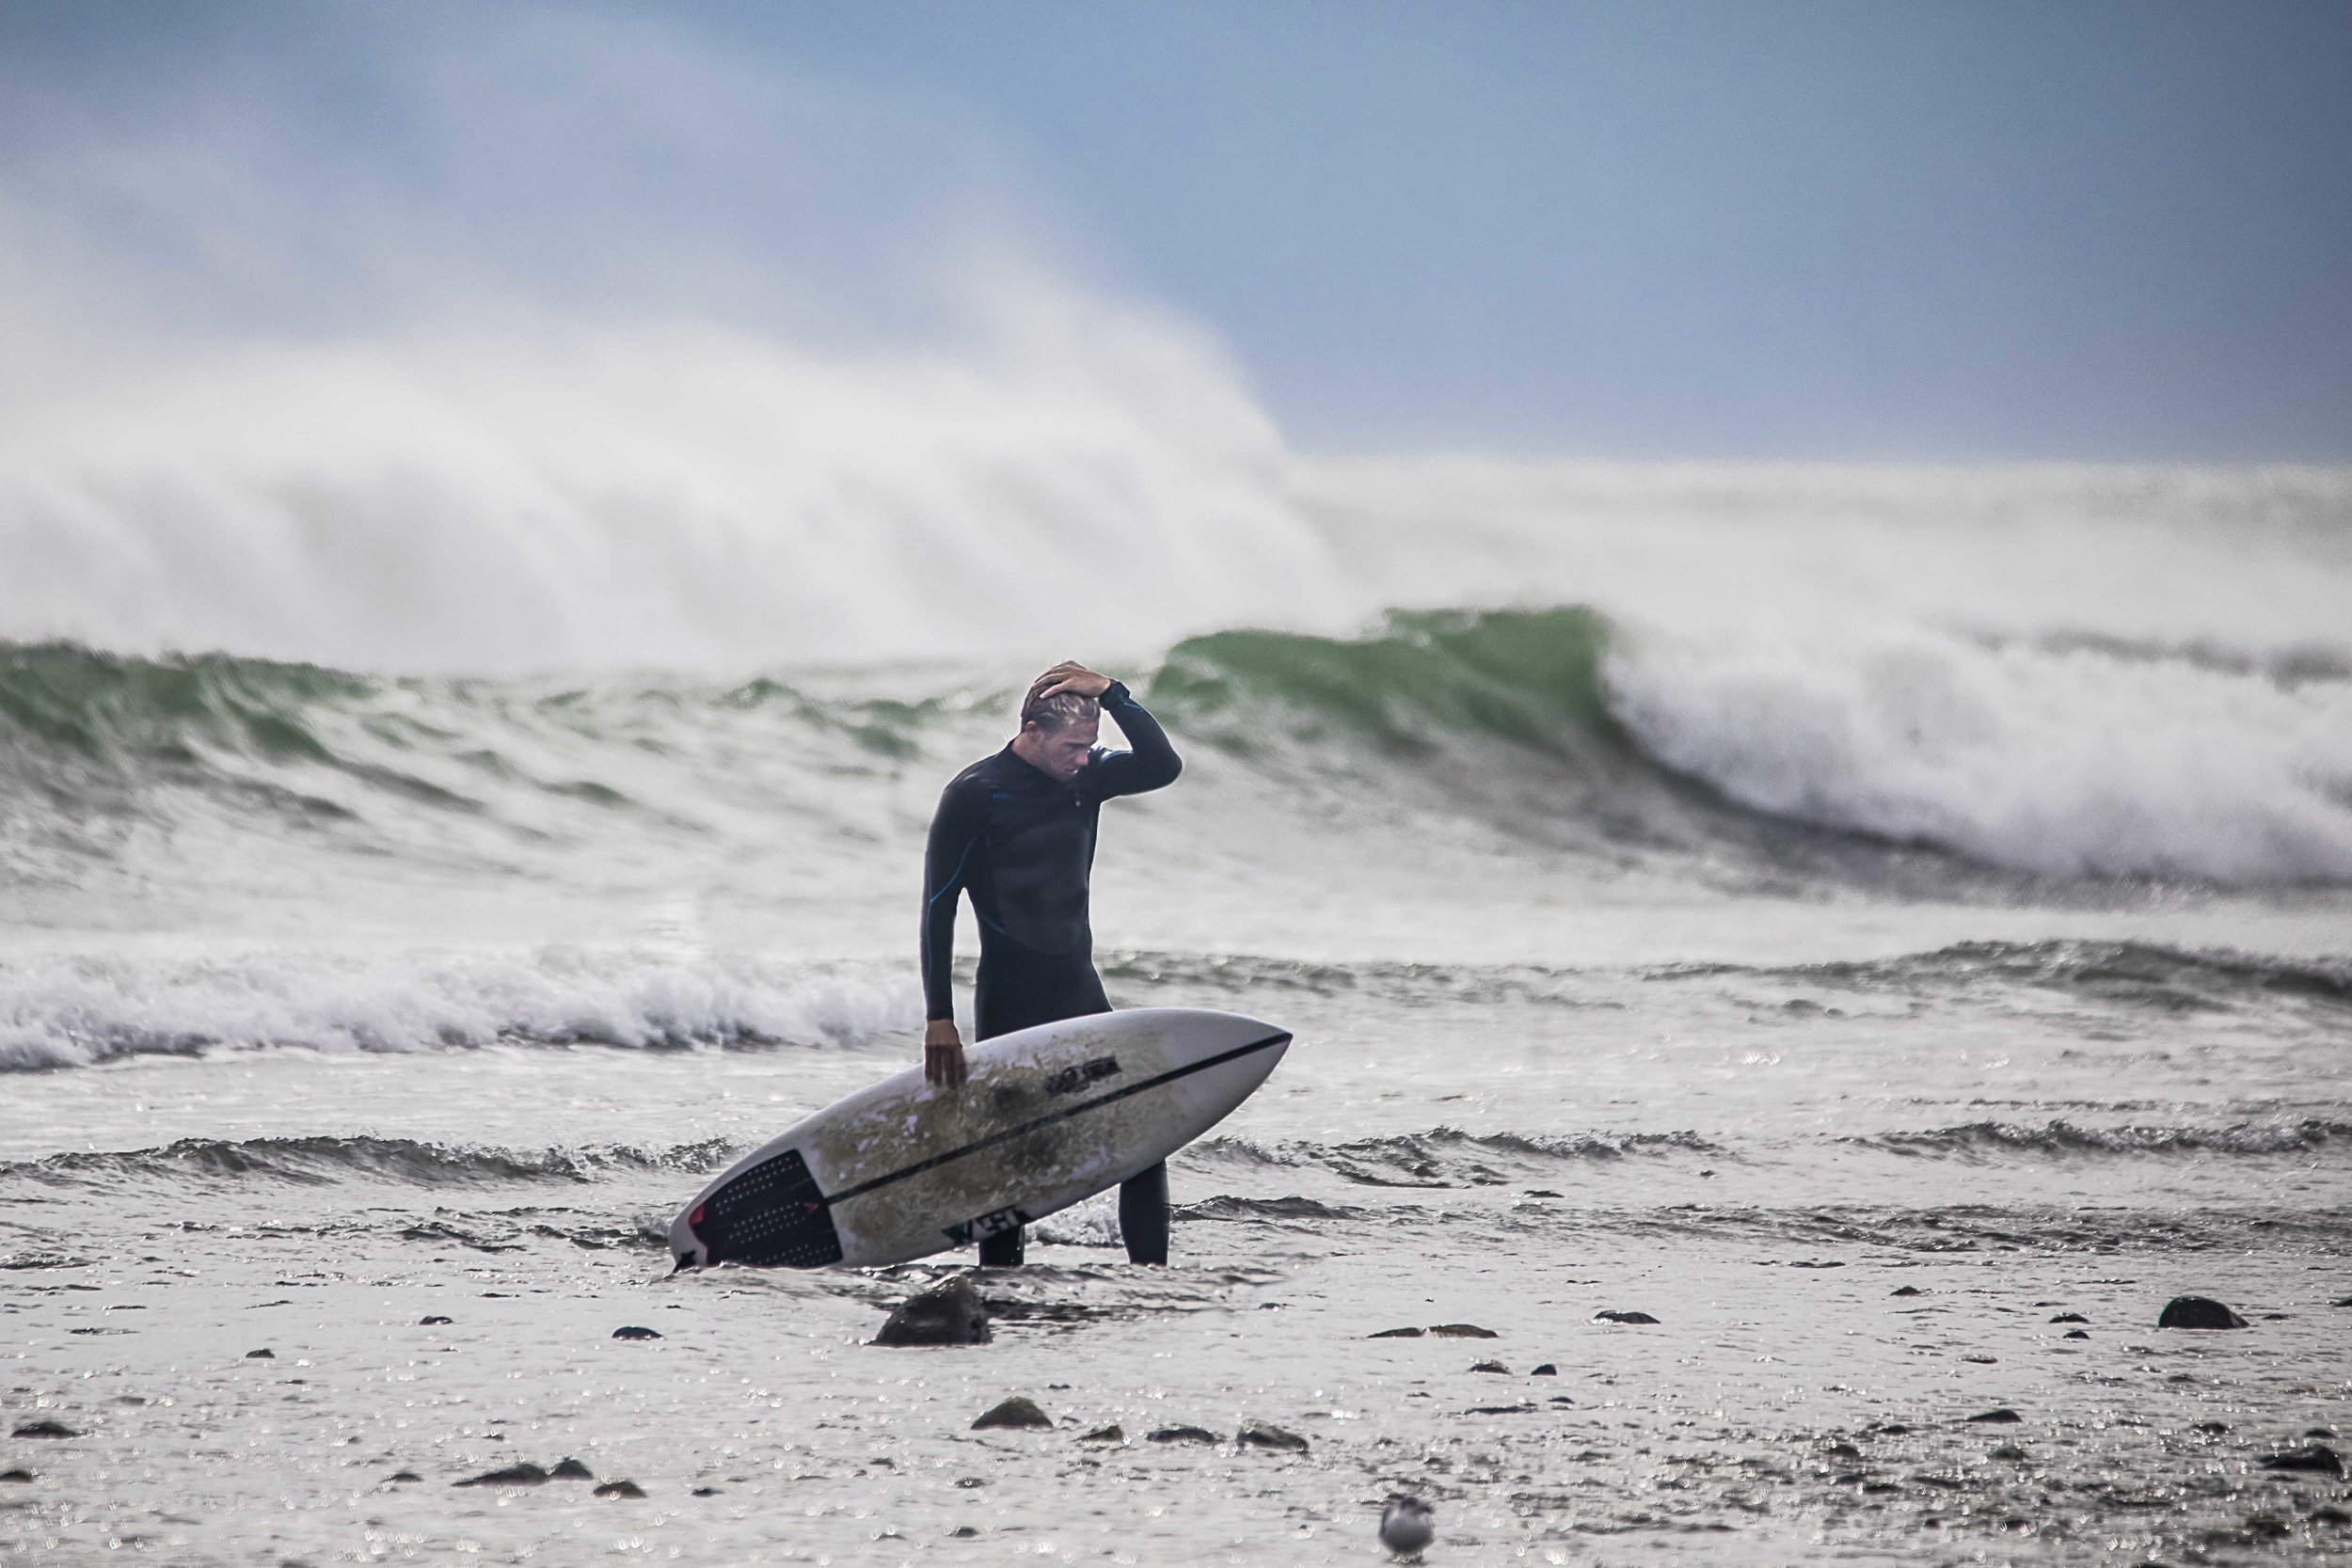 A surfer exits the water after an epic shred session during September's memorable storm surge at Deep Hole in Matunuck, R.I.